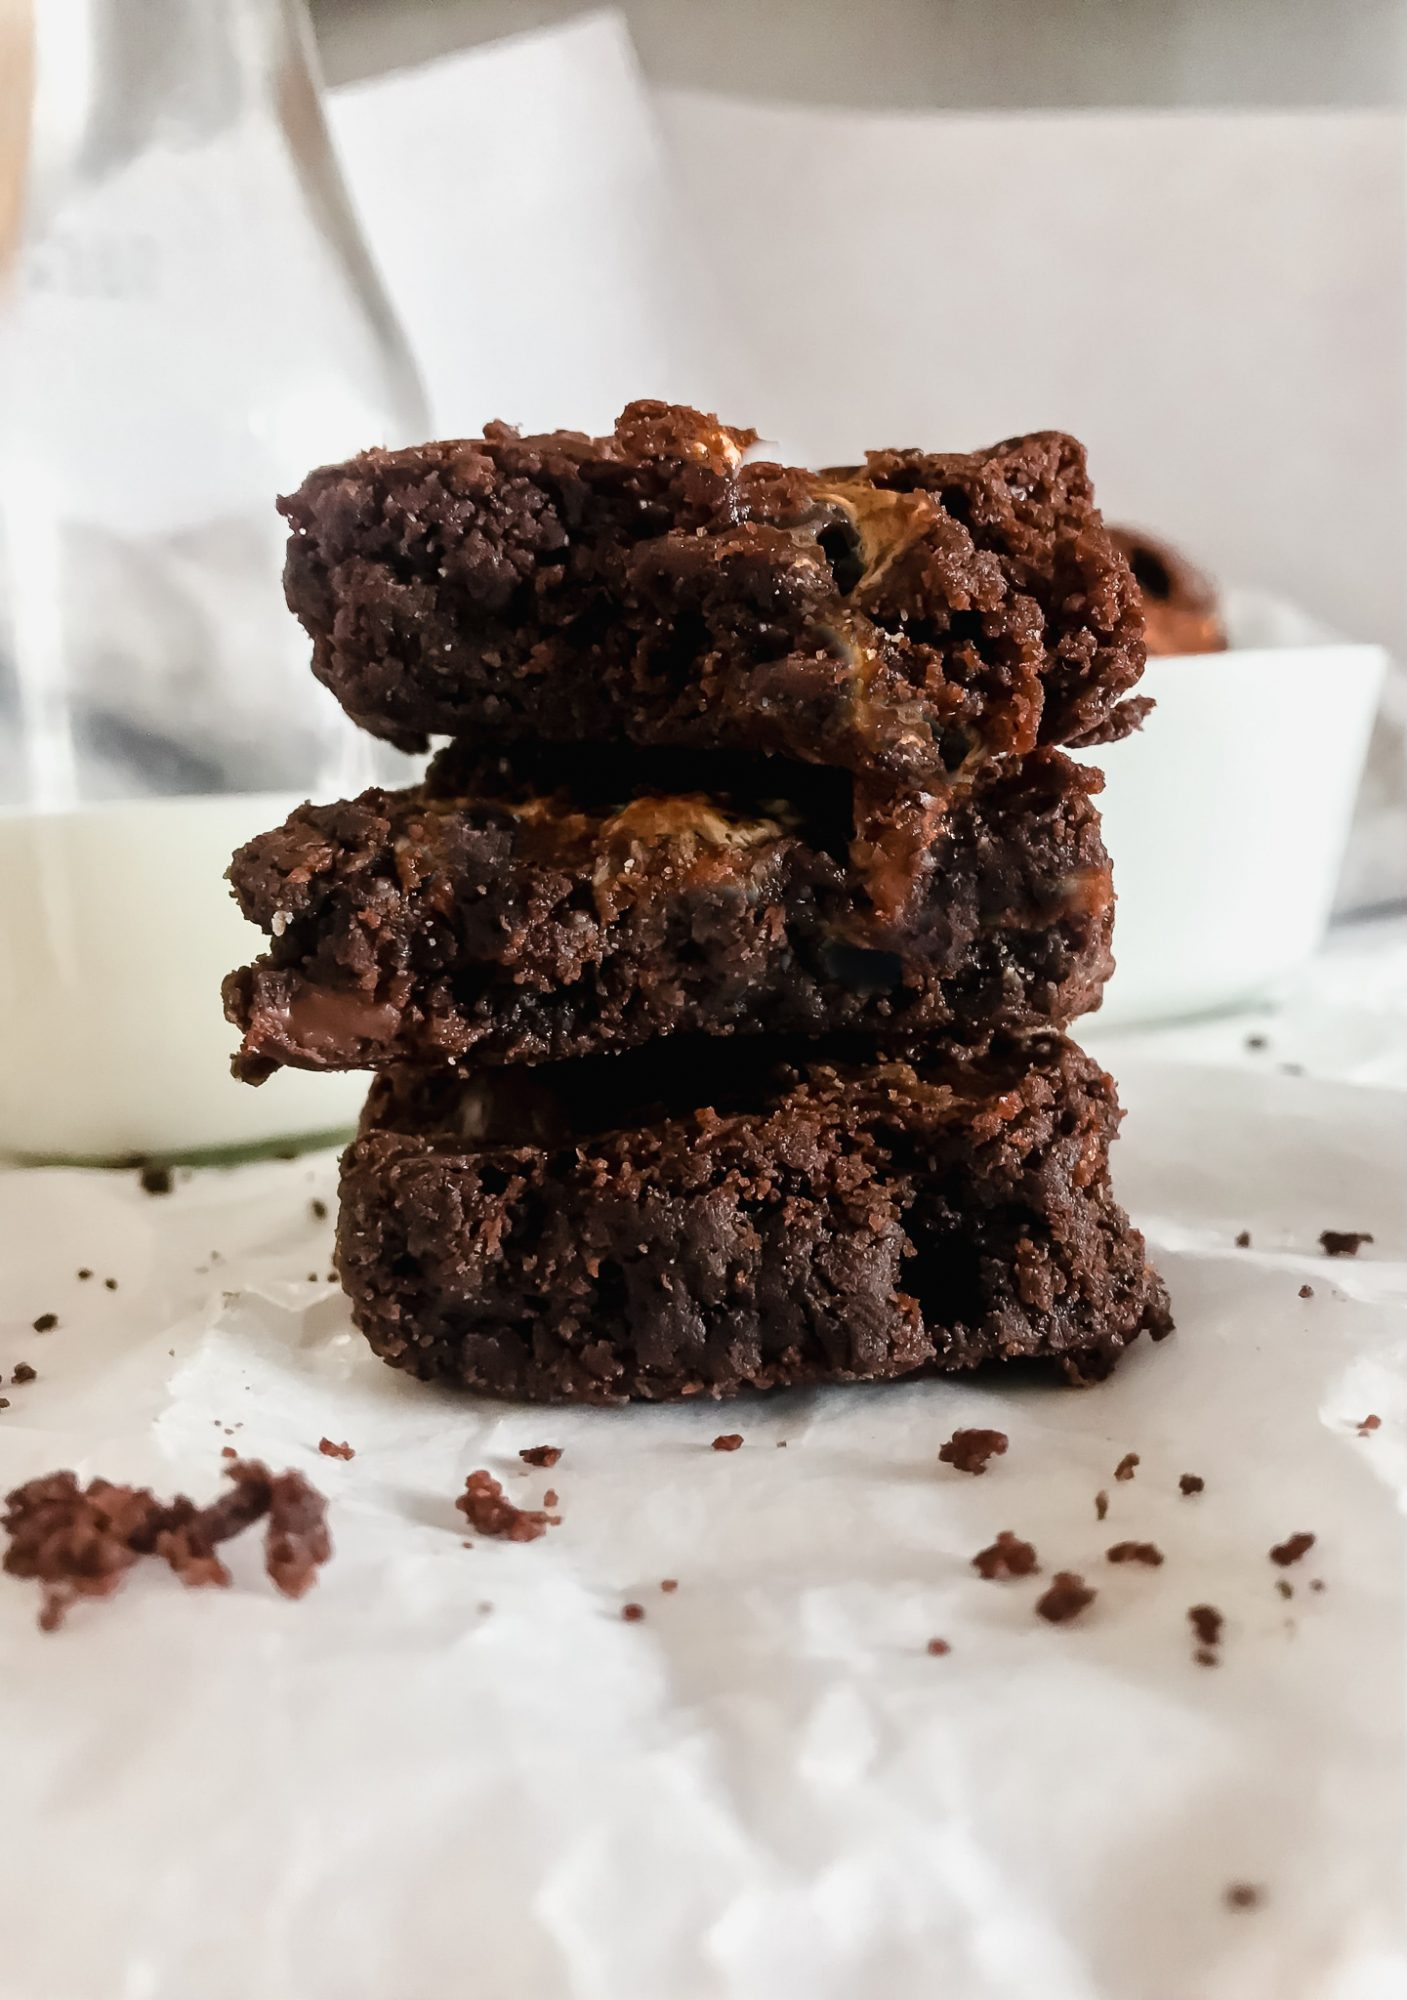 This easy dessert recipe is delicious and healthy! This avocado brownie recipe is packed with vitamins A, E, K, B, and healthy fatty acids. It tastes fudgey and delicious and you won't be able to even tell the difference! Get the full recipe at yesmissy.com